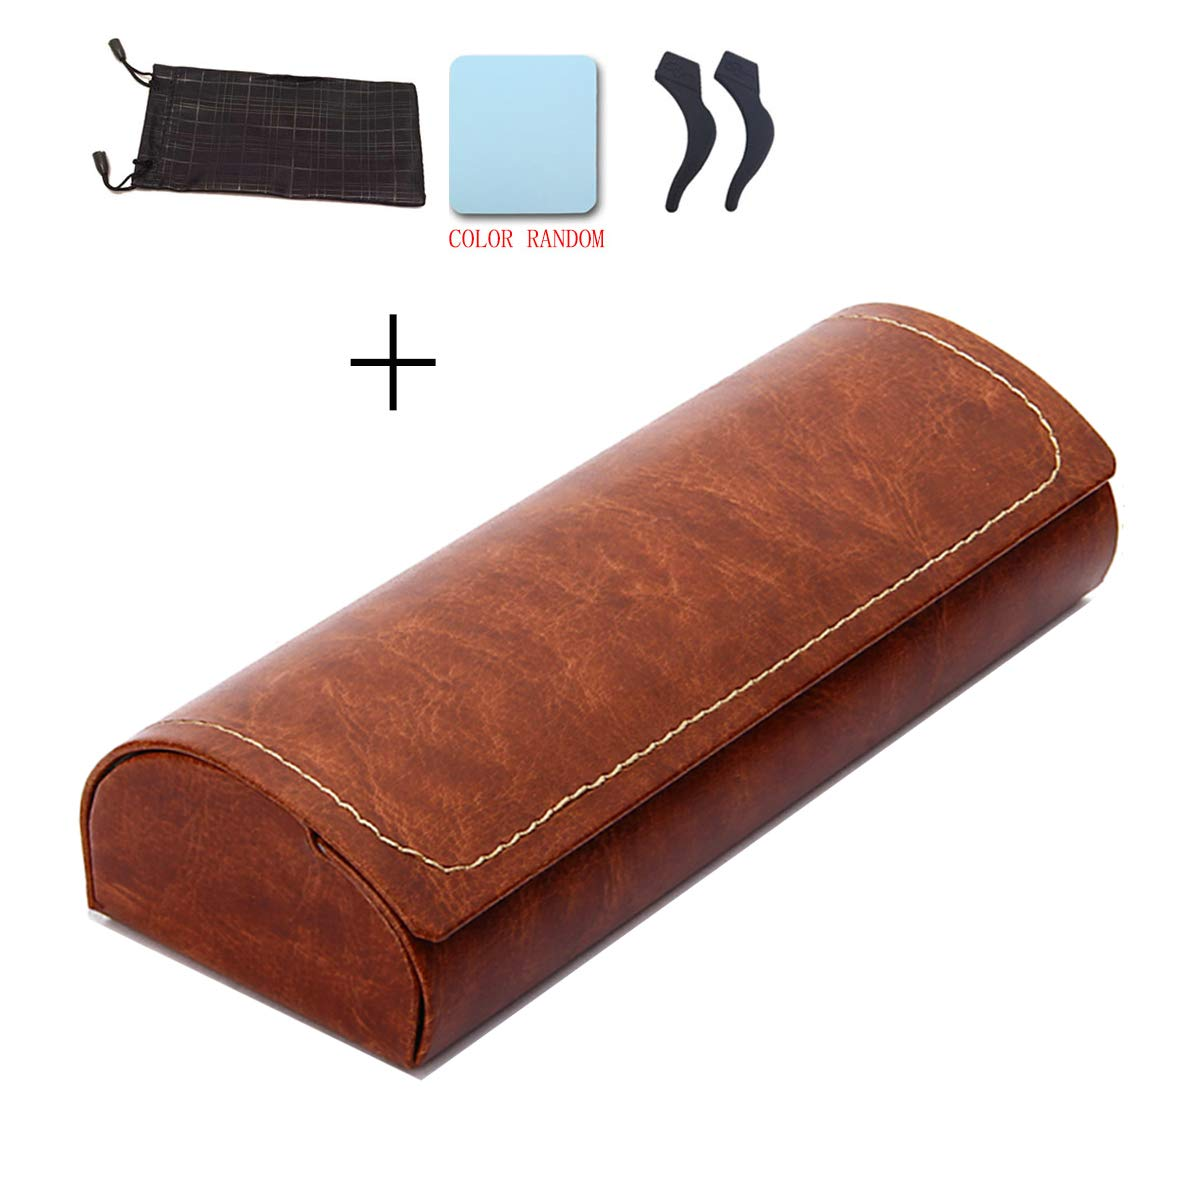 PU Leather Eyeglass Case Hard Eyewear Protective Holder Case with Sunglasses Pouch (Brown)